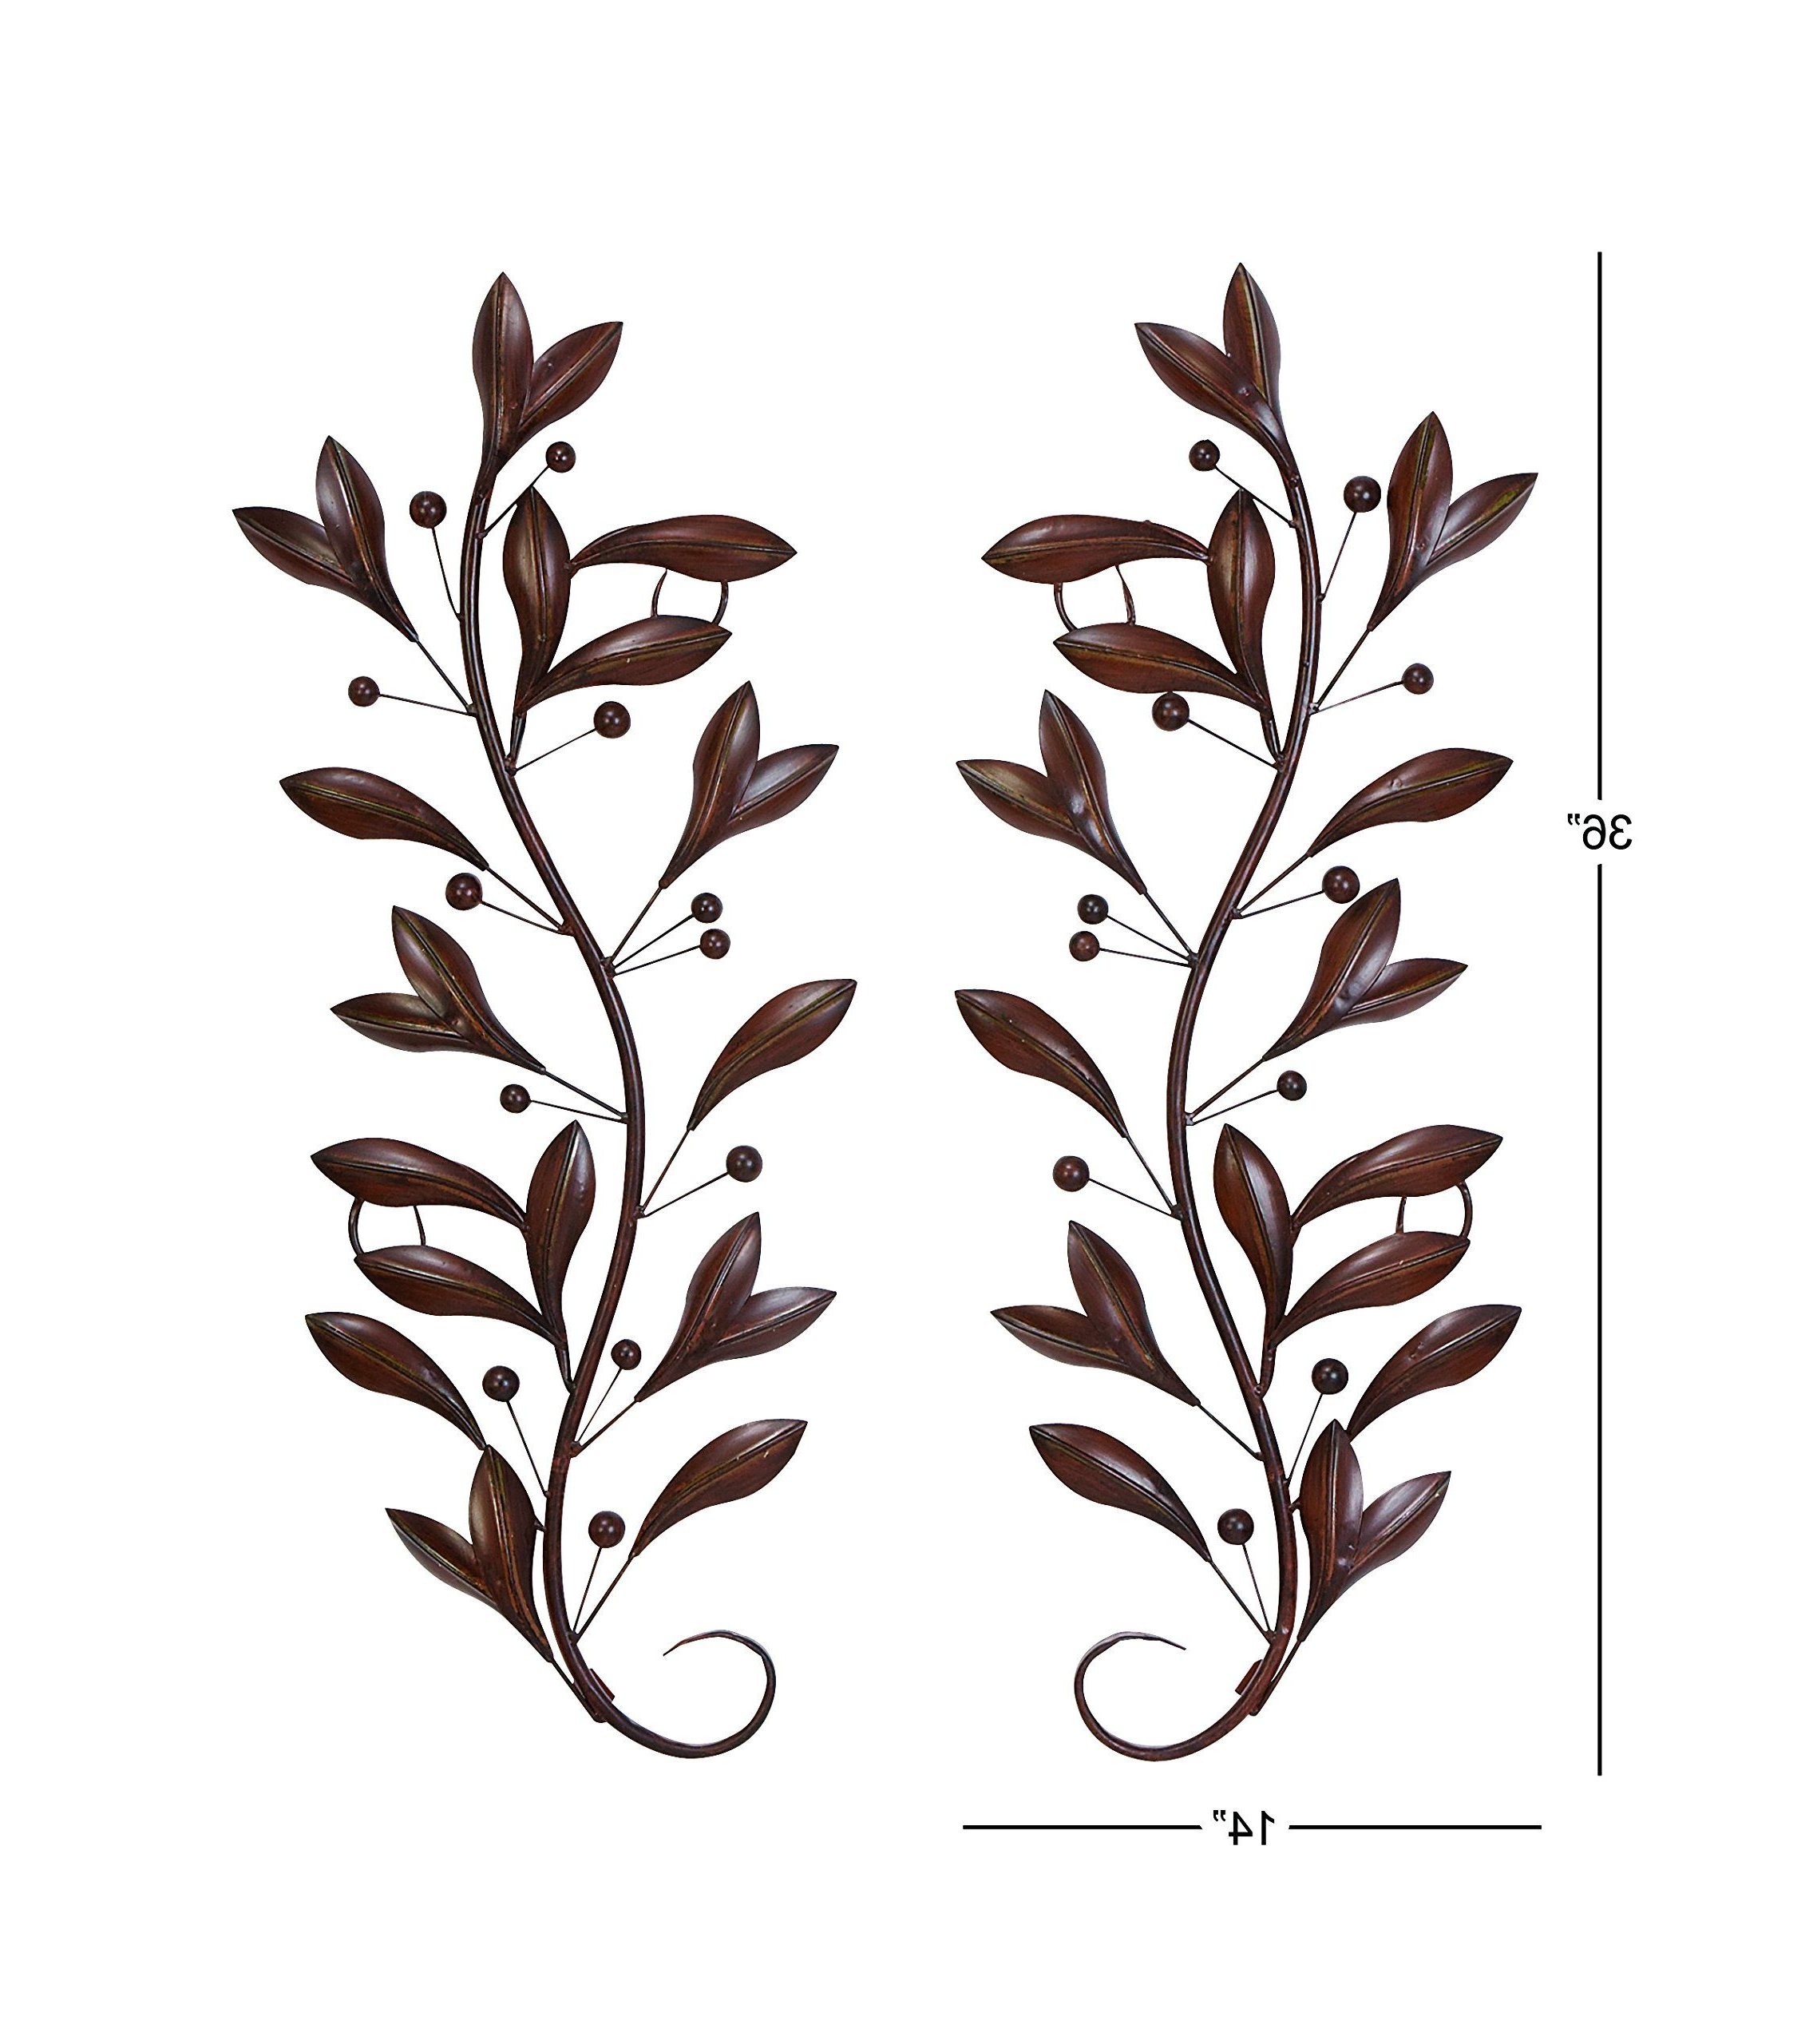 Metal Leaf With Berries Wall Décor Intended For Most Recent Deco 79 63048 Loft Nature Metal Leaf Wall Decor 1436inch (View 8 of 20)